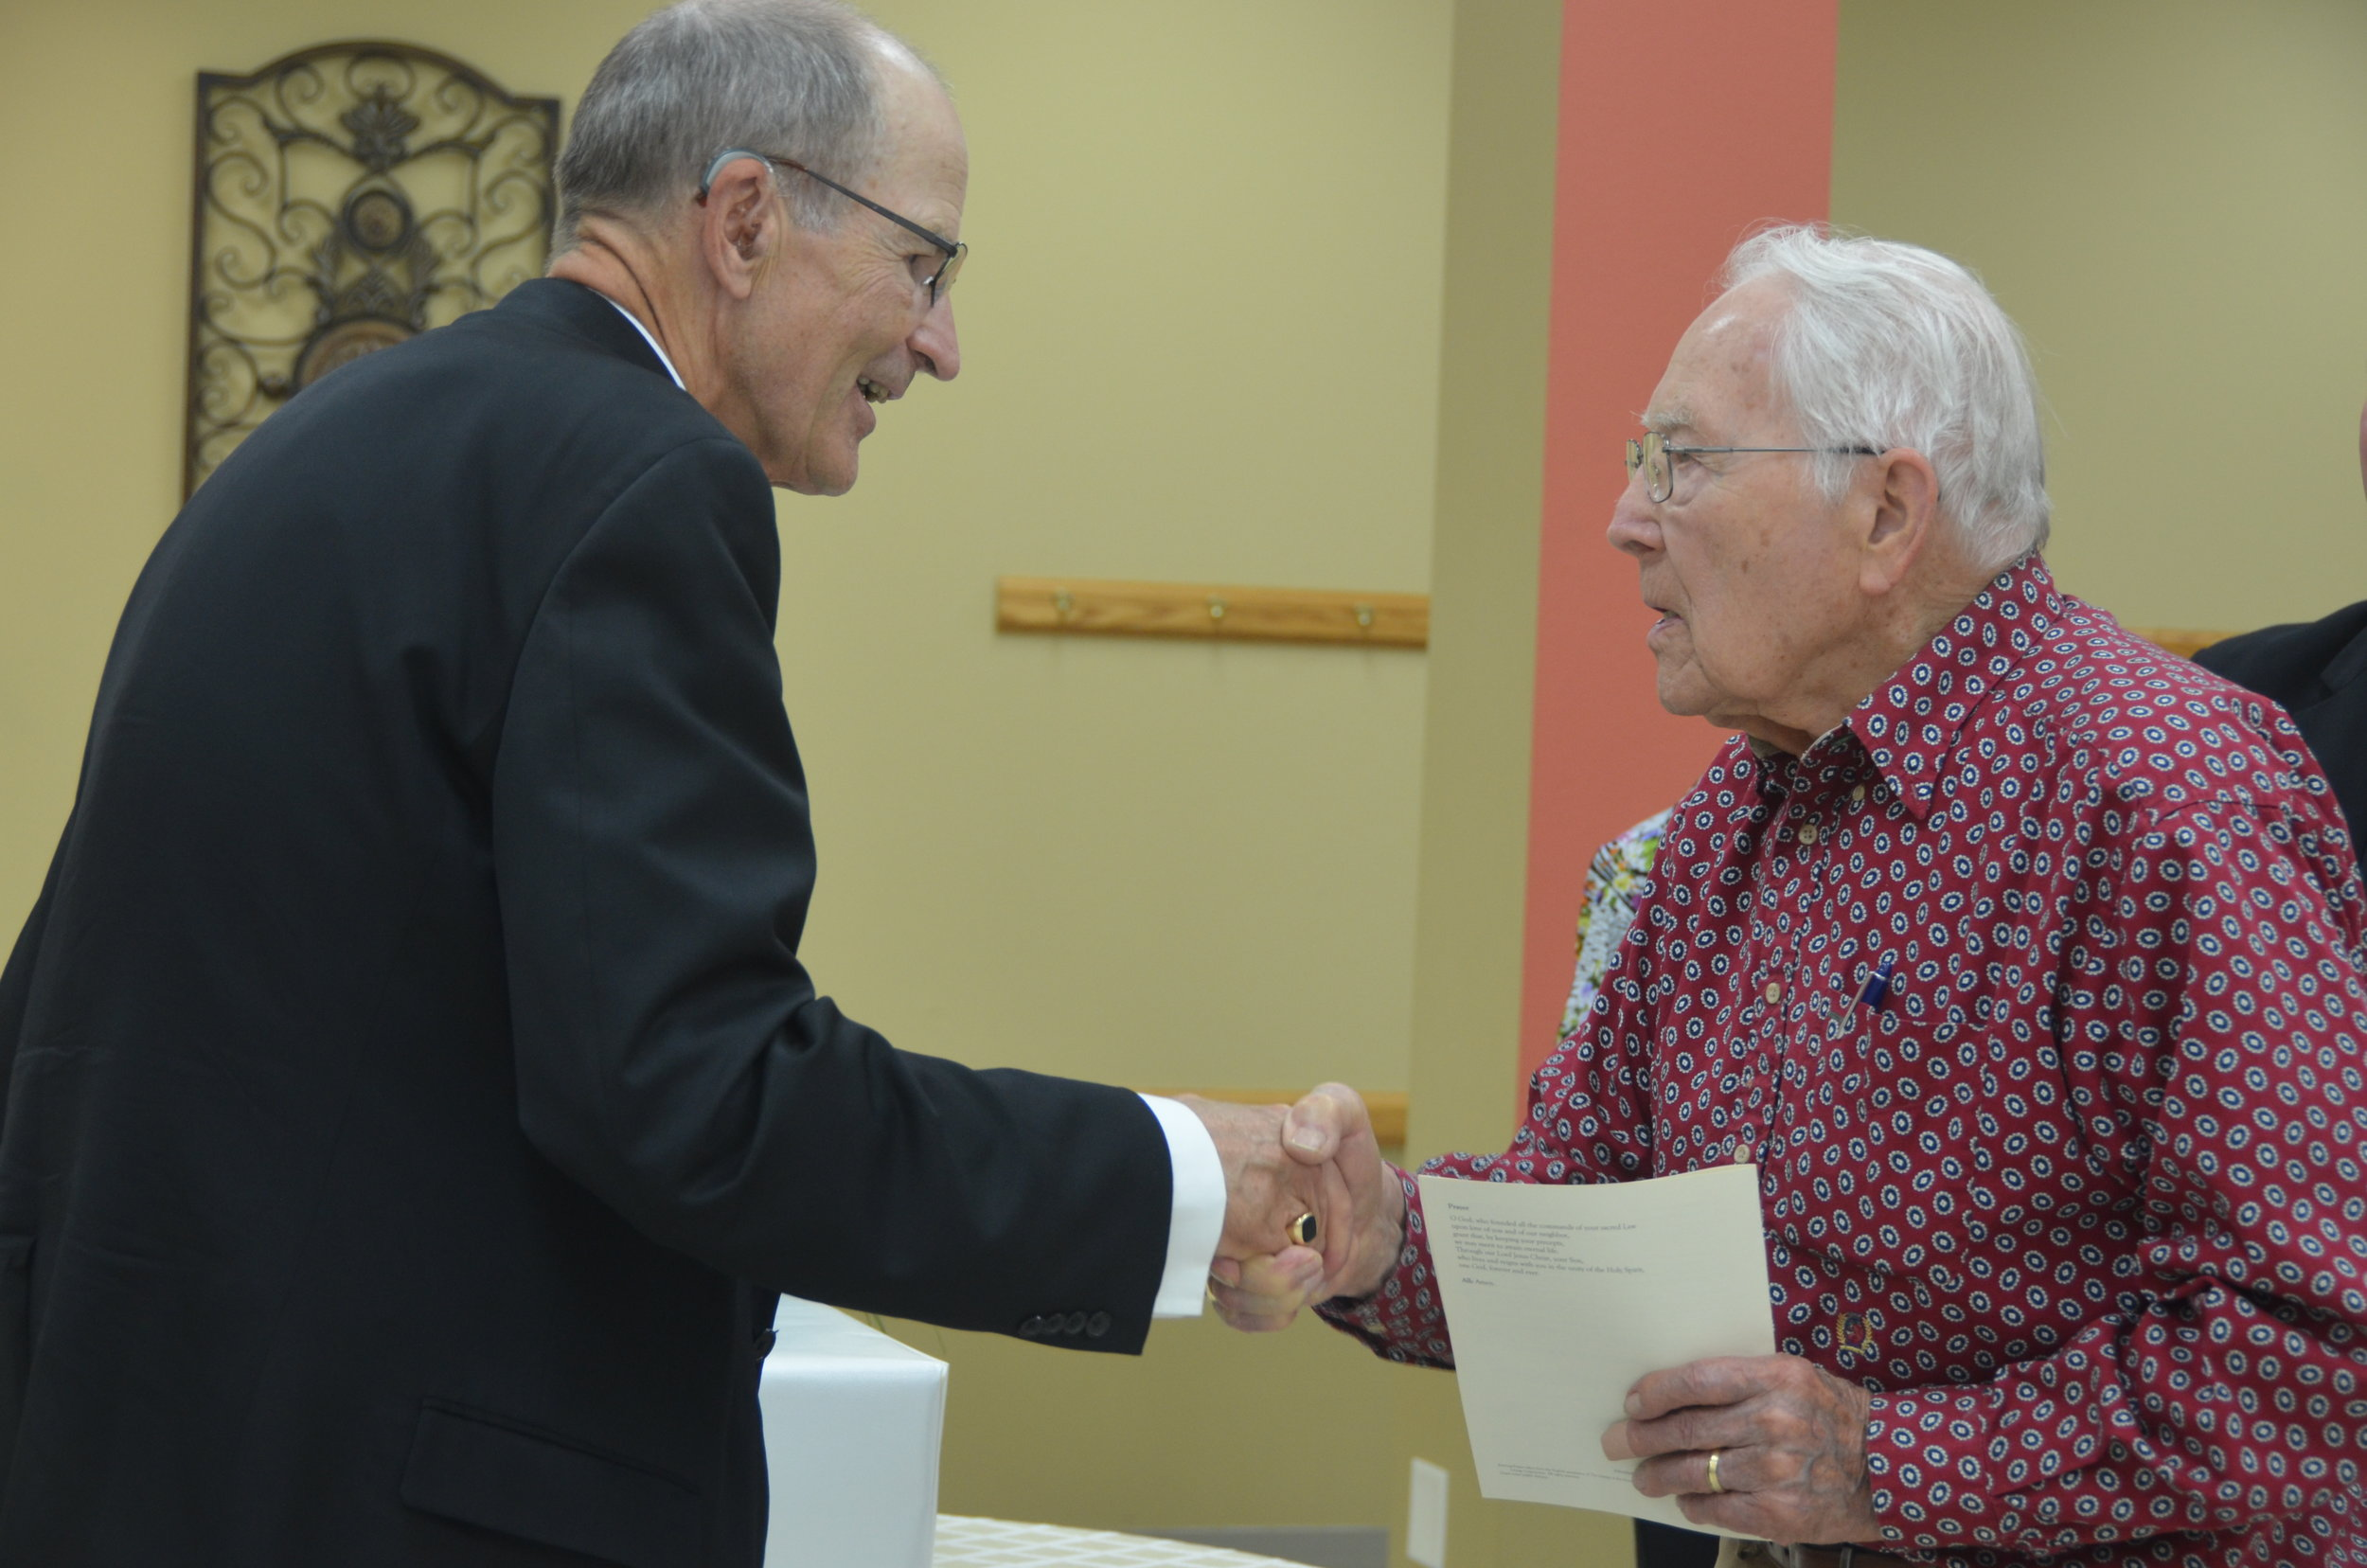 OLIVIA - Bishop LeVoir greets Bob Brix, a parishioner of St. Clara's in Clara City who attended the Sunday, Sept. 23 evening prayer service and reception at St. Aloysius in Olivia in honor of Bishop LeVoir's 10 year anniversary as shepherd of the diocese.